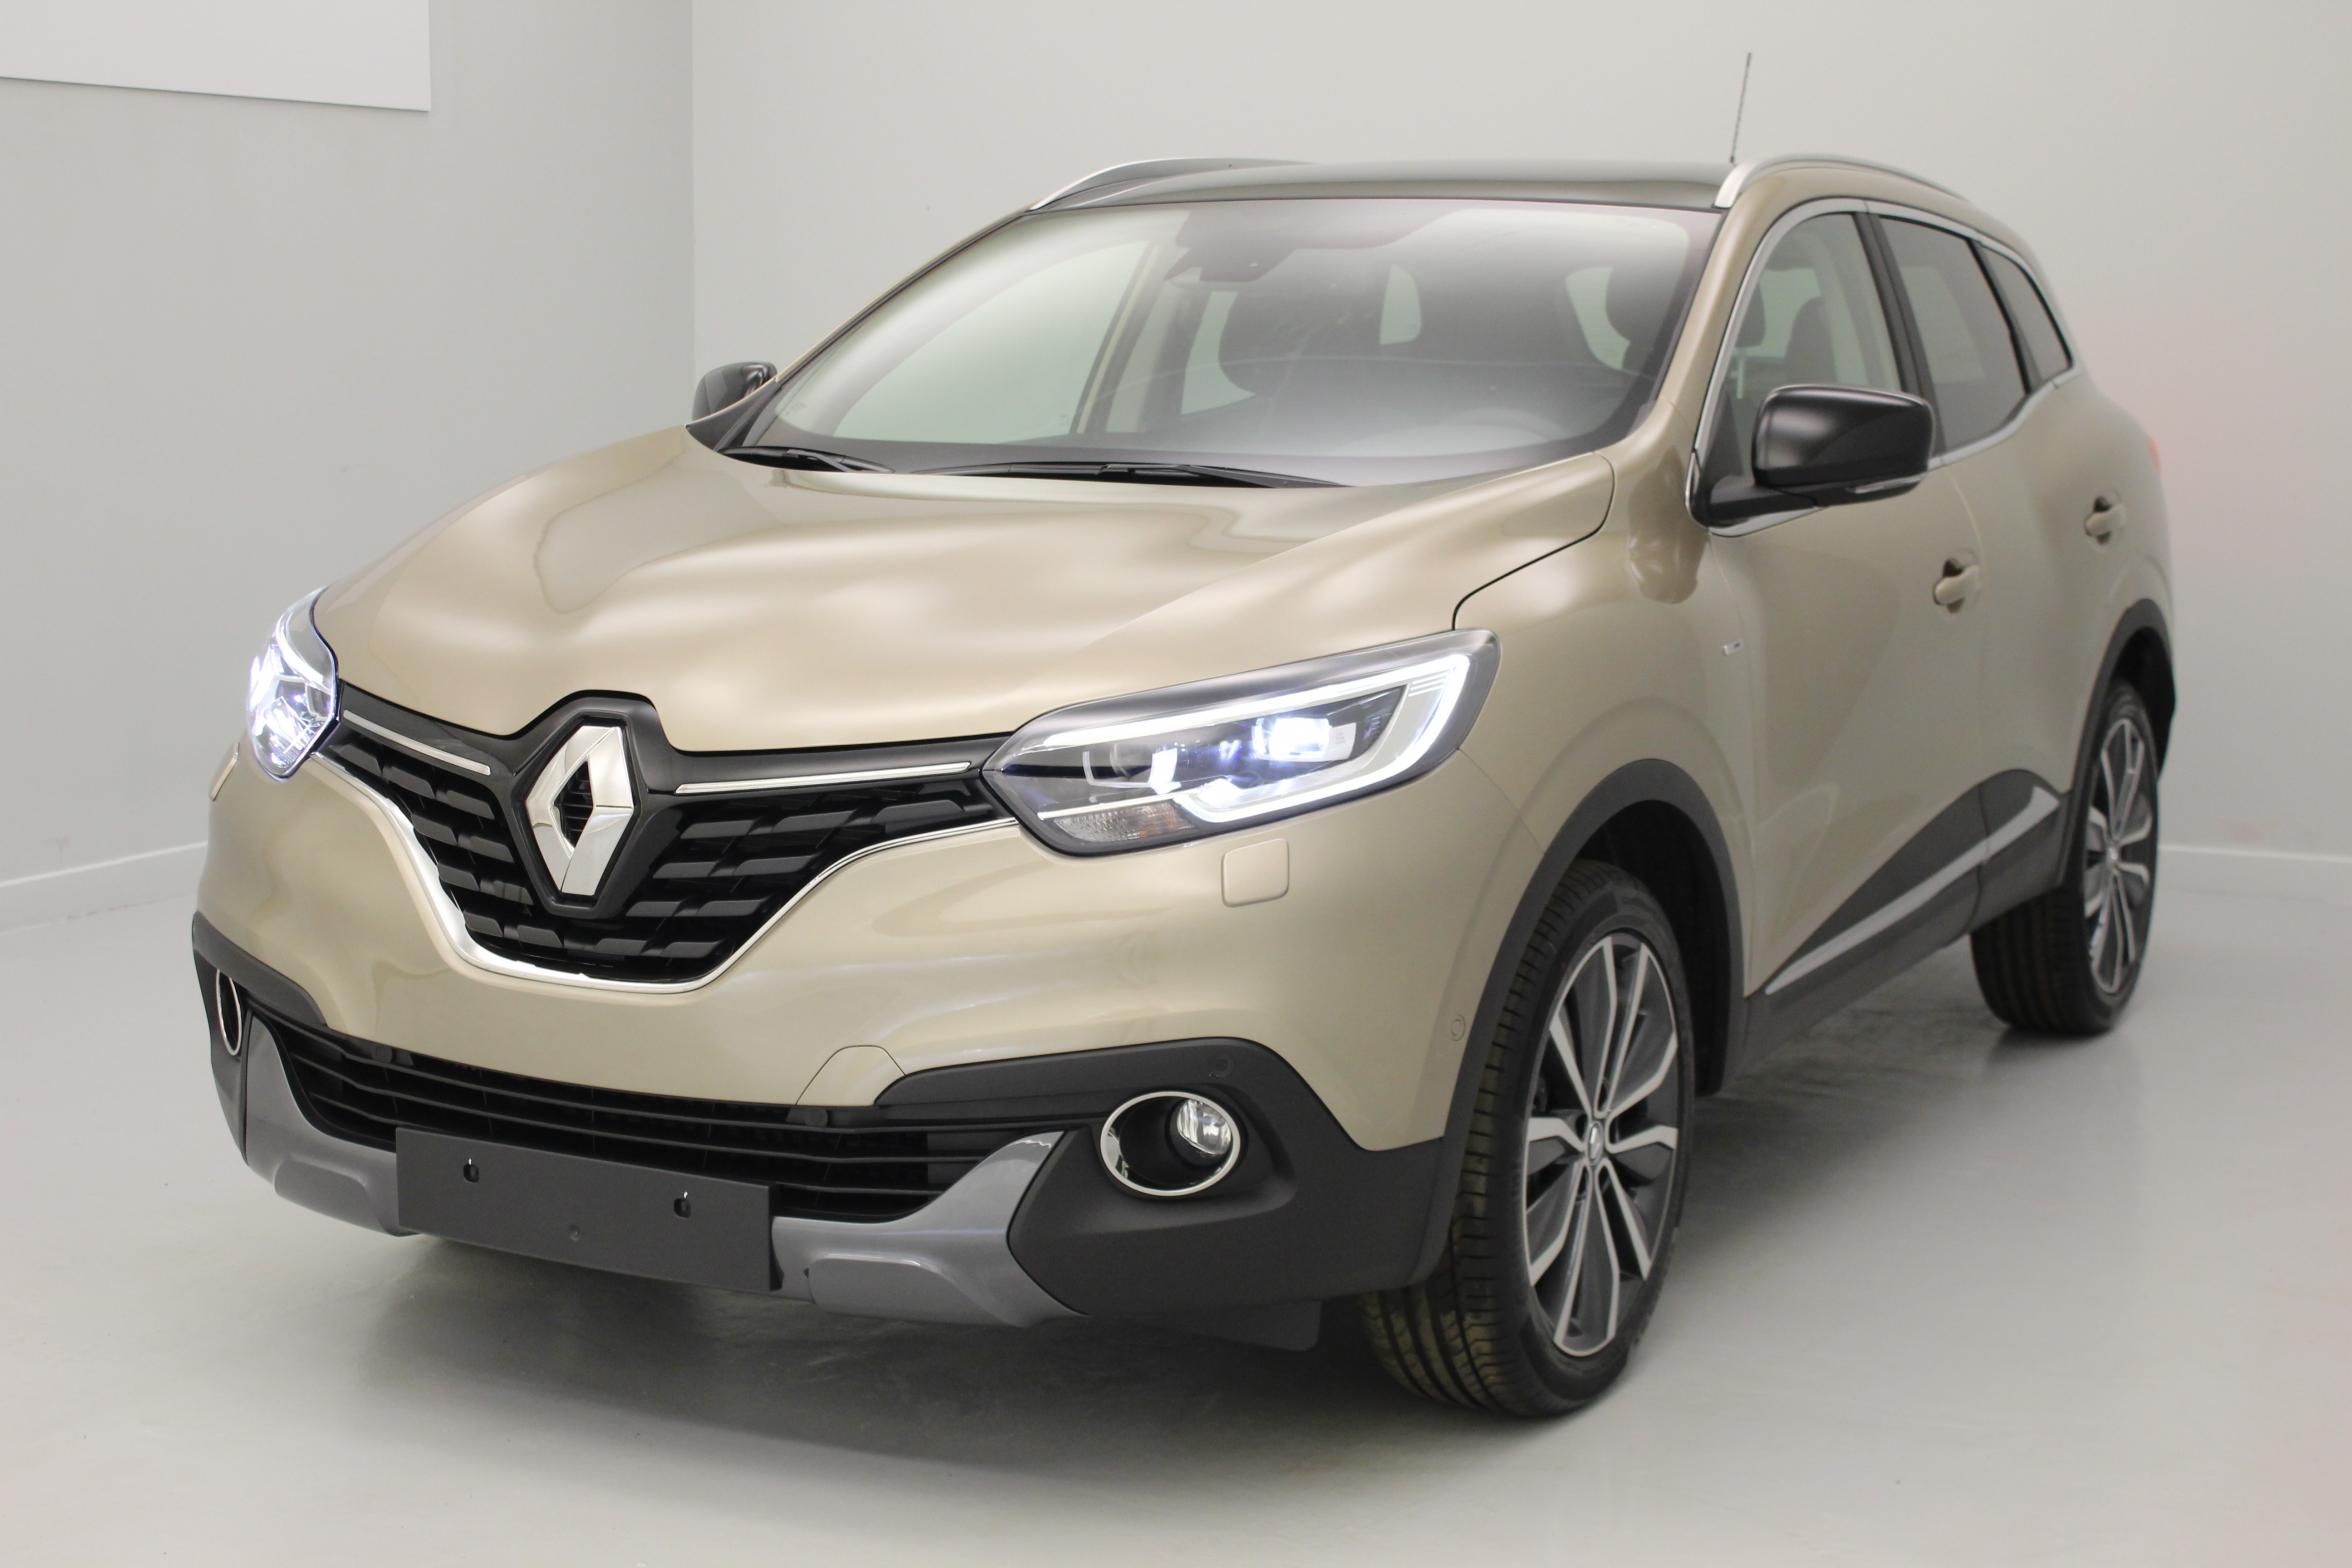 renault kadjar dci 110 energy eco intens beige dune garantie 5 ans ou 100 000 kms toit. Black Bedroom Furniture Sets. Home Design Ideas